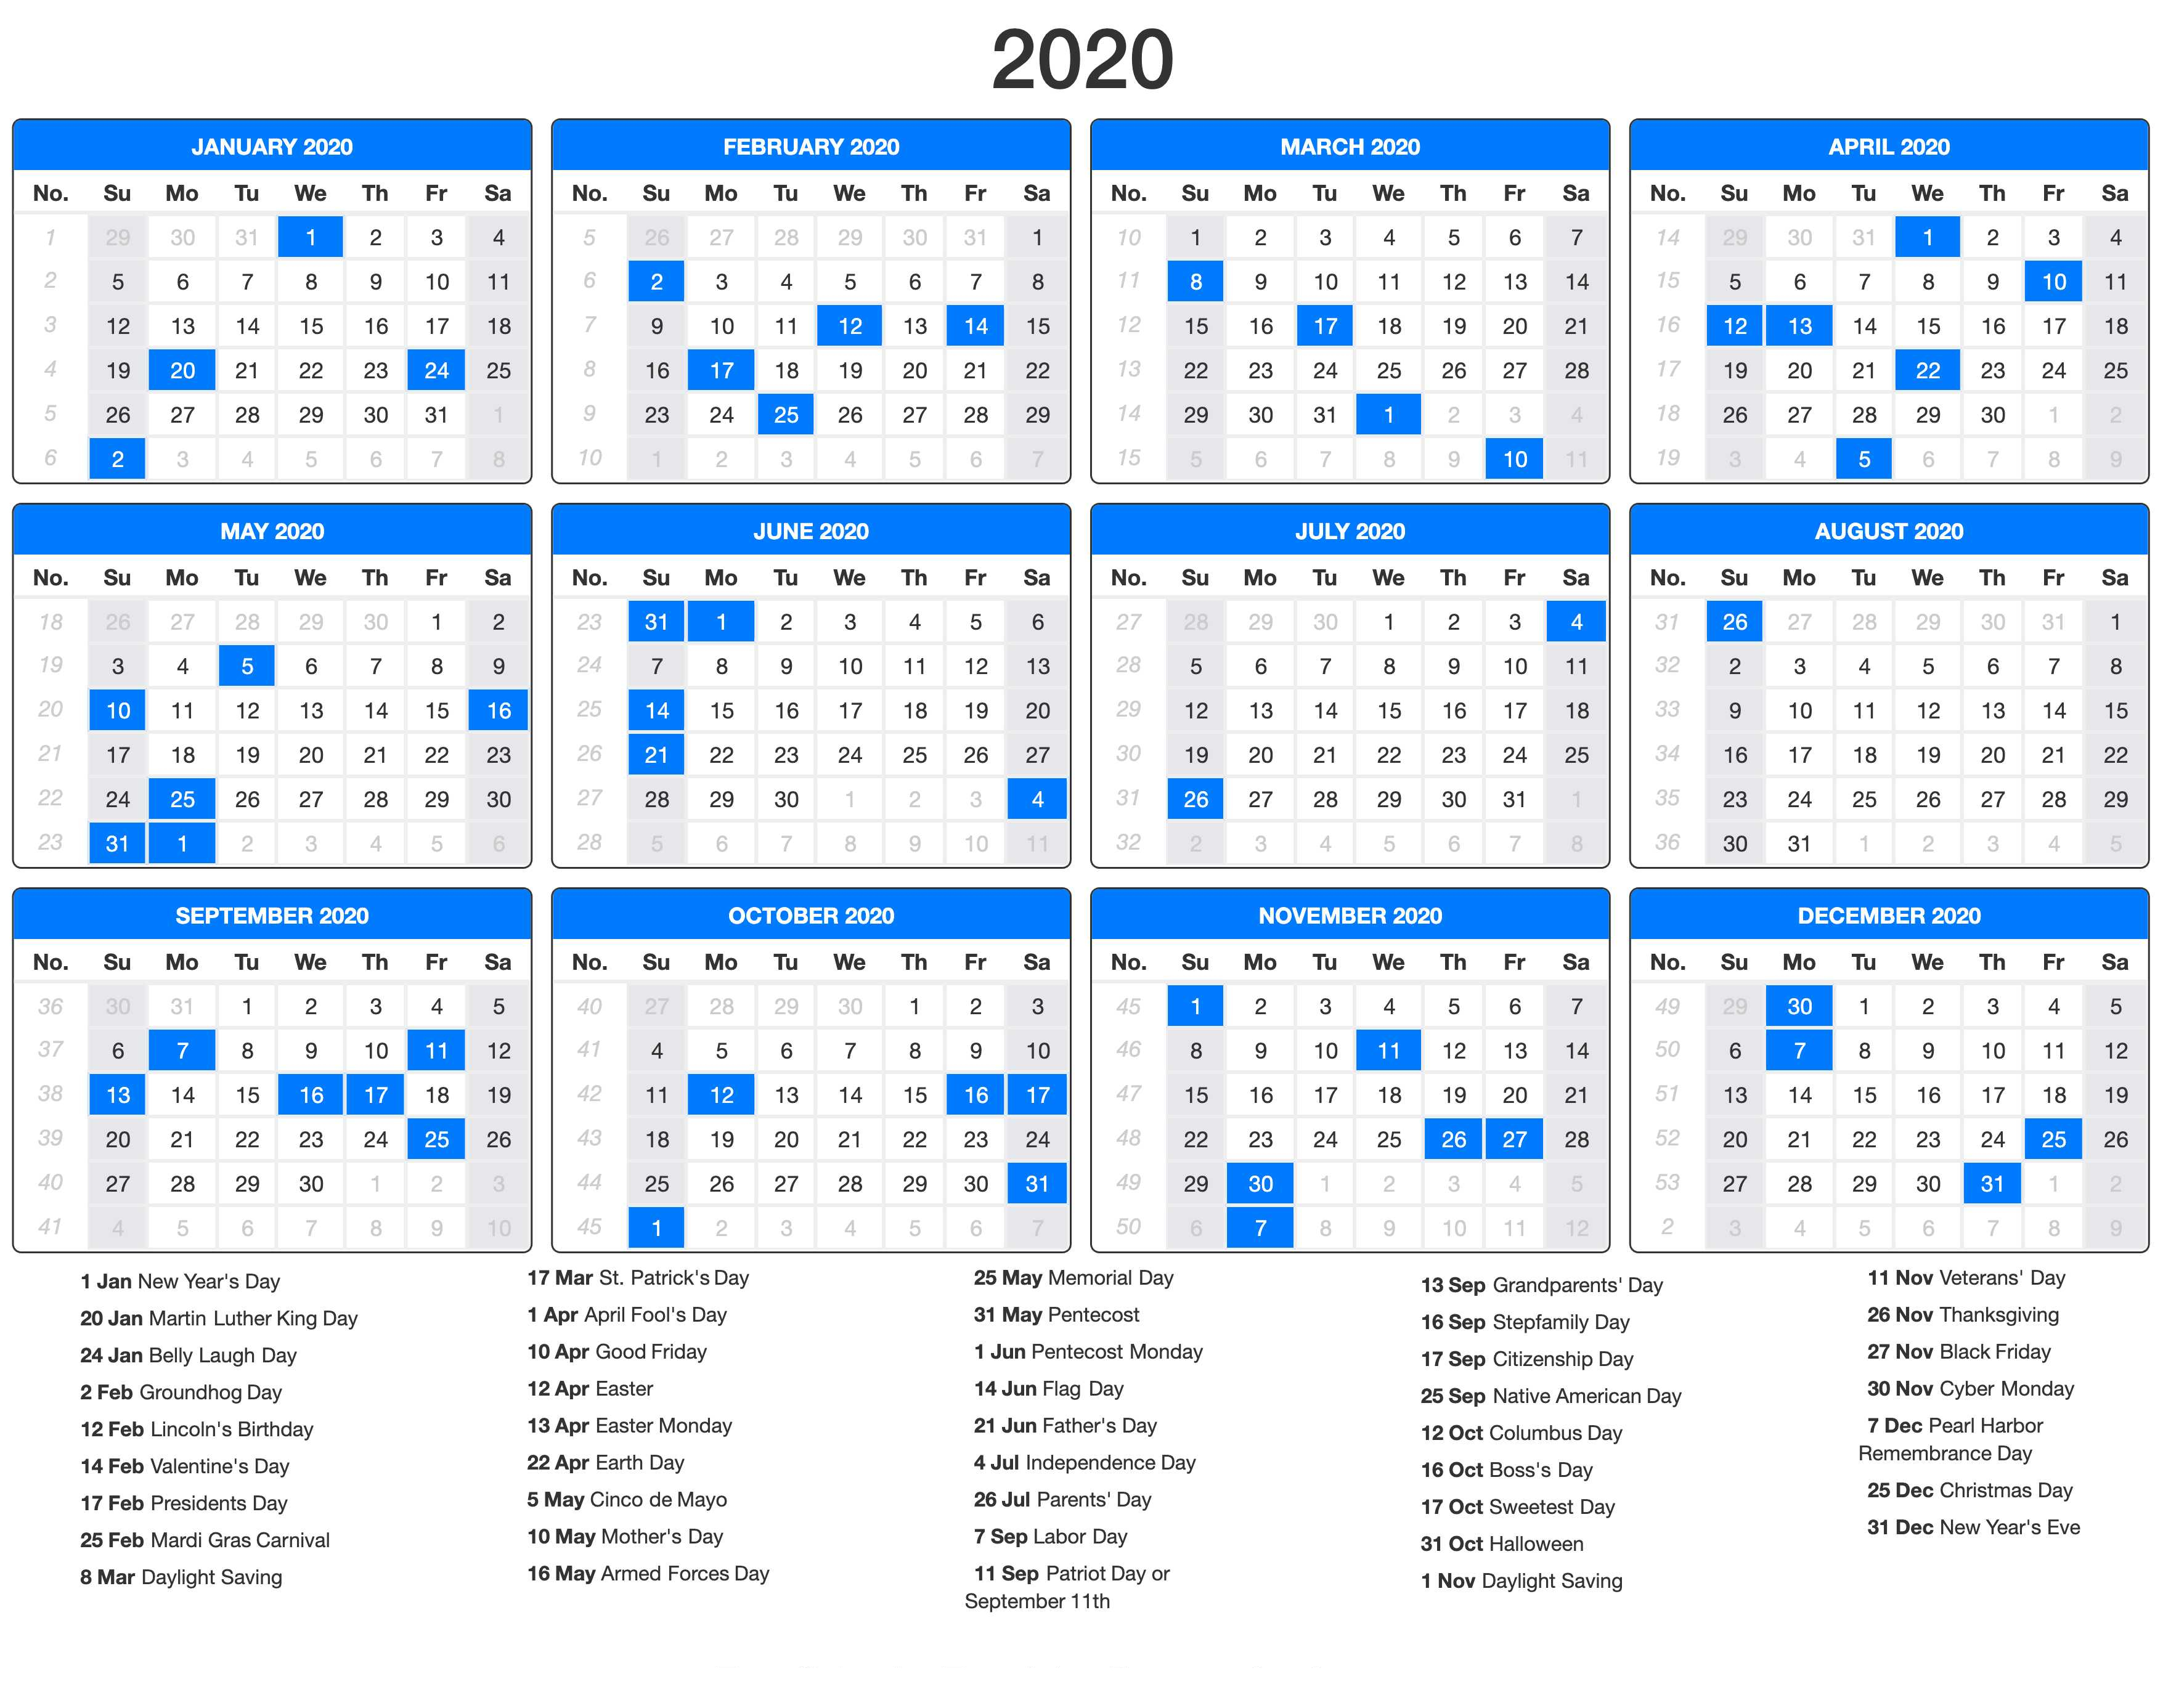 Free Printable Calendar 2020 With Holidays | 12 Month intended for 2020 Yearly Calendar With Holidays